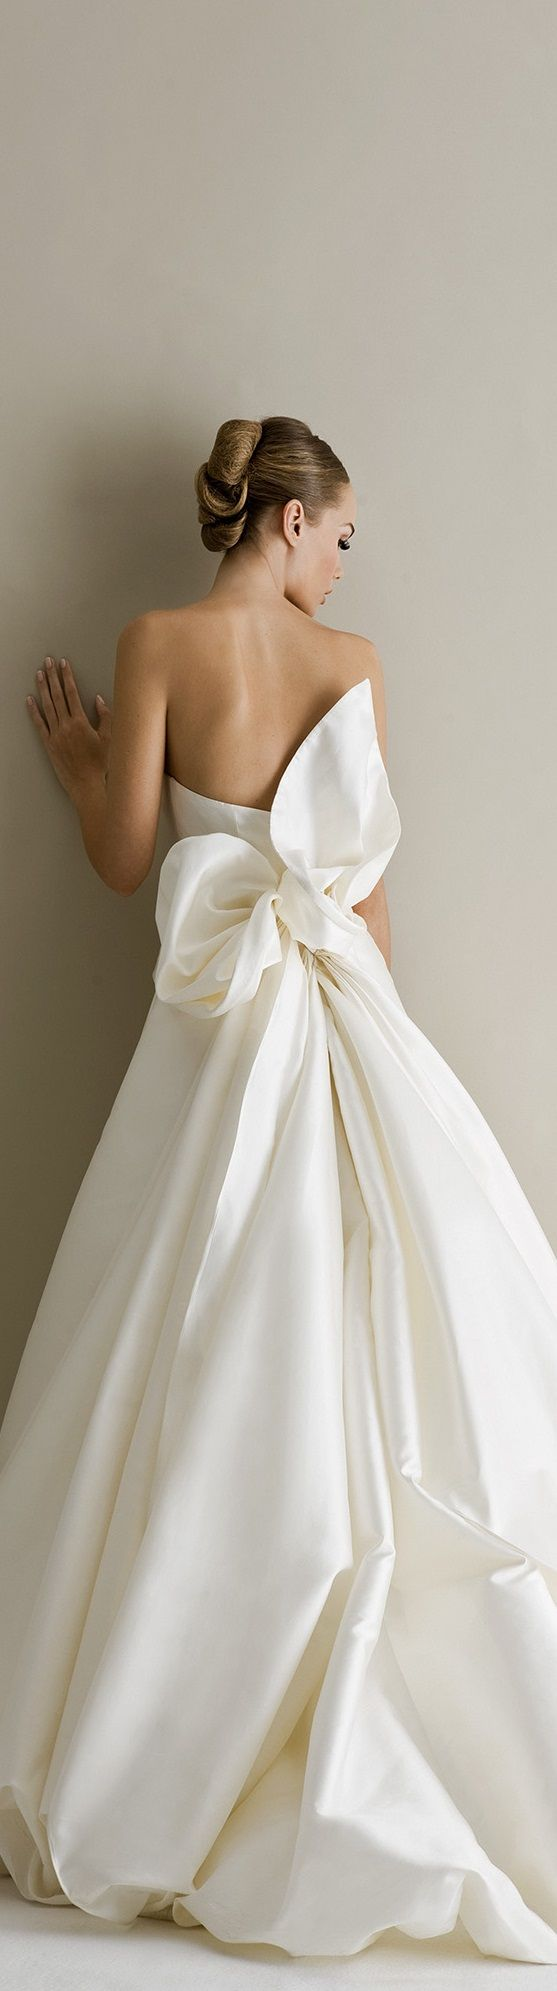 Wedding dress with bow on back  ANTONIO RIVA BRIDAL COLLECTION  I LOVE THIS BACK HOW BEAUTIFUL